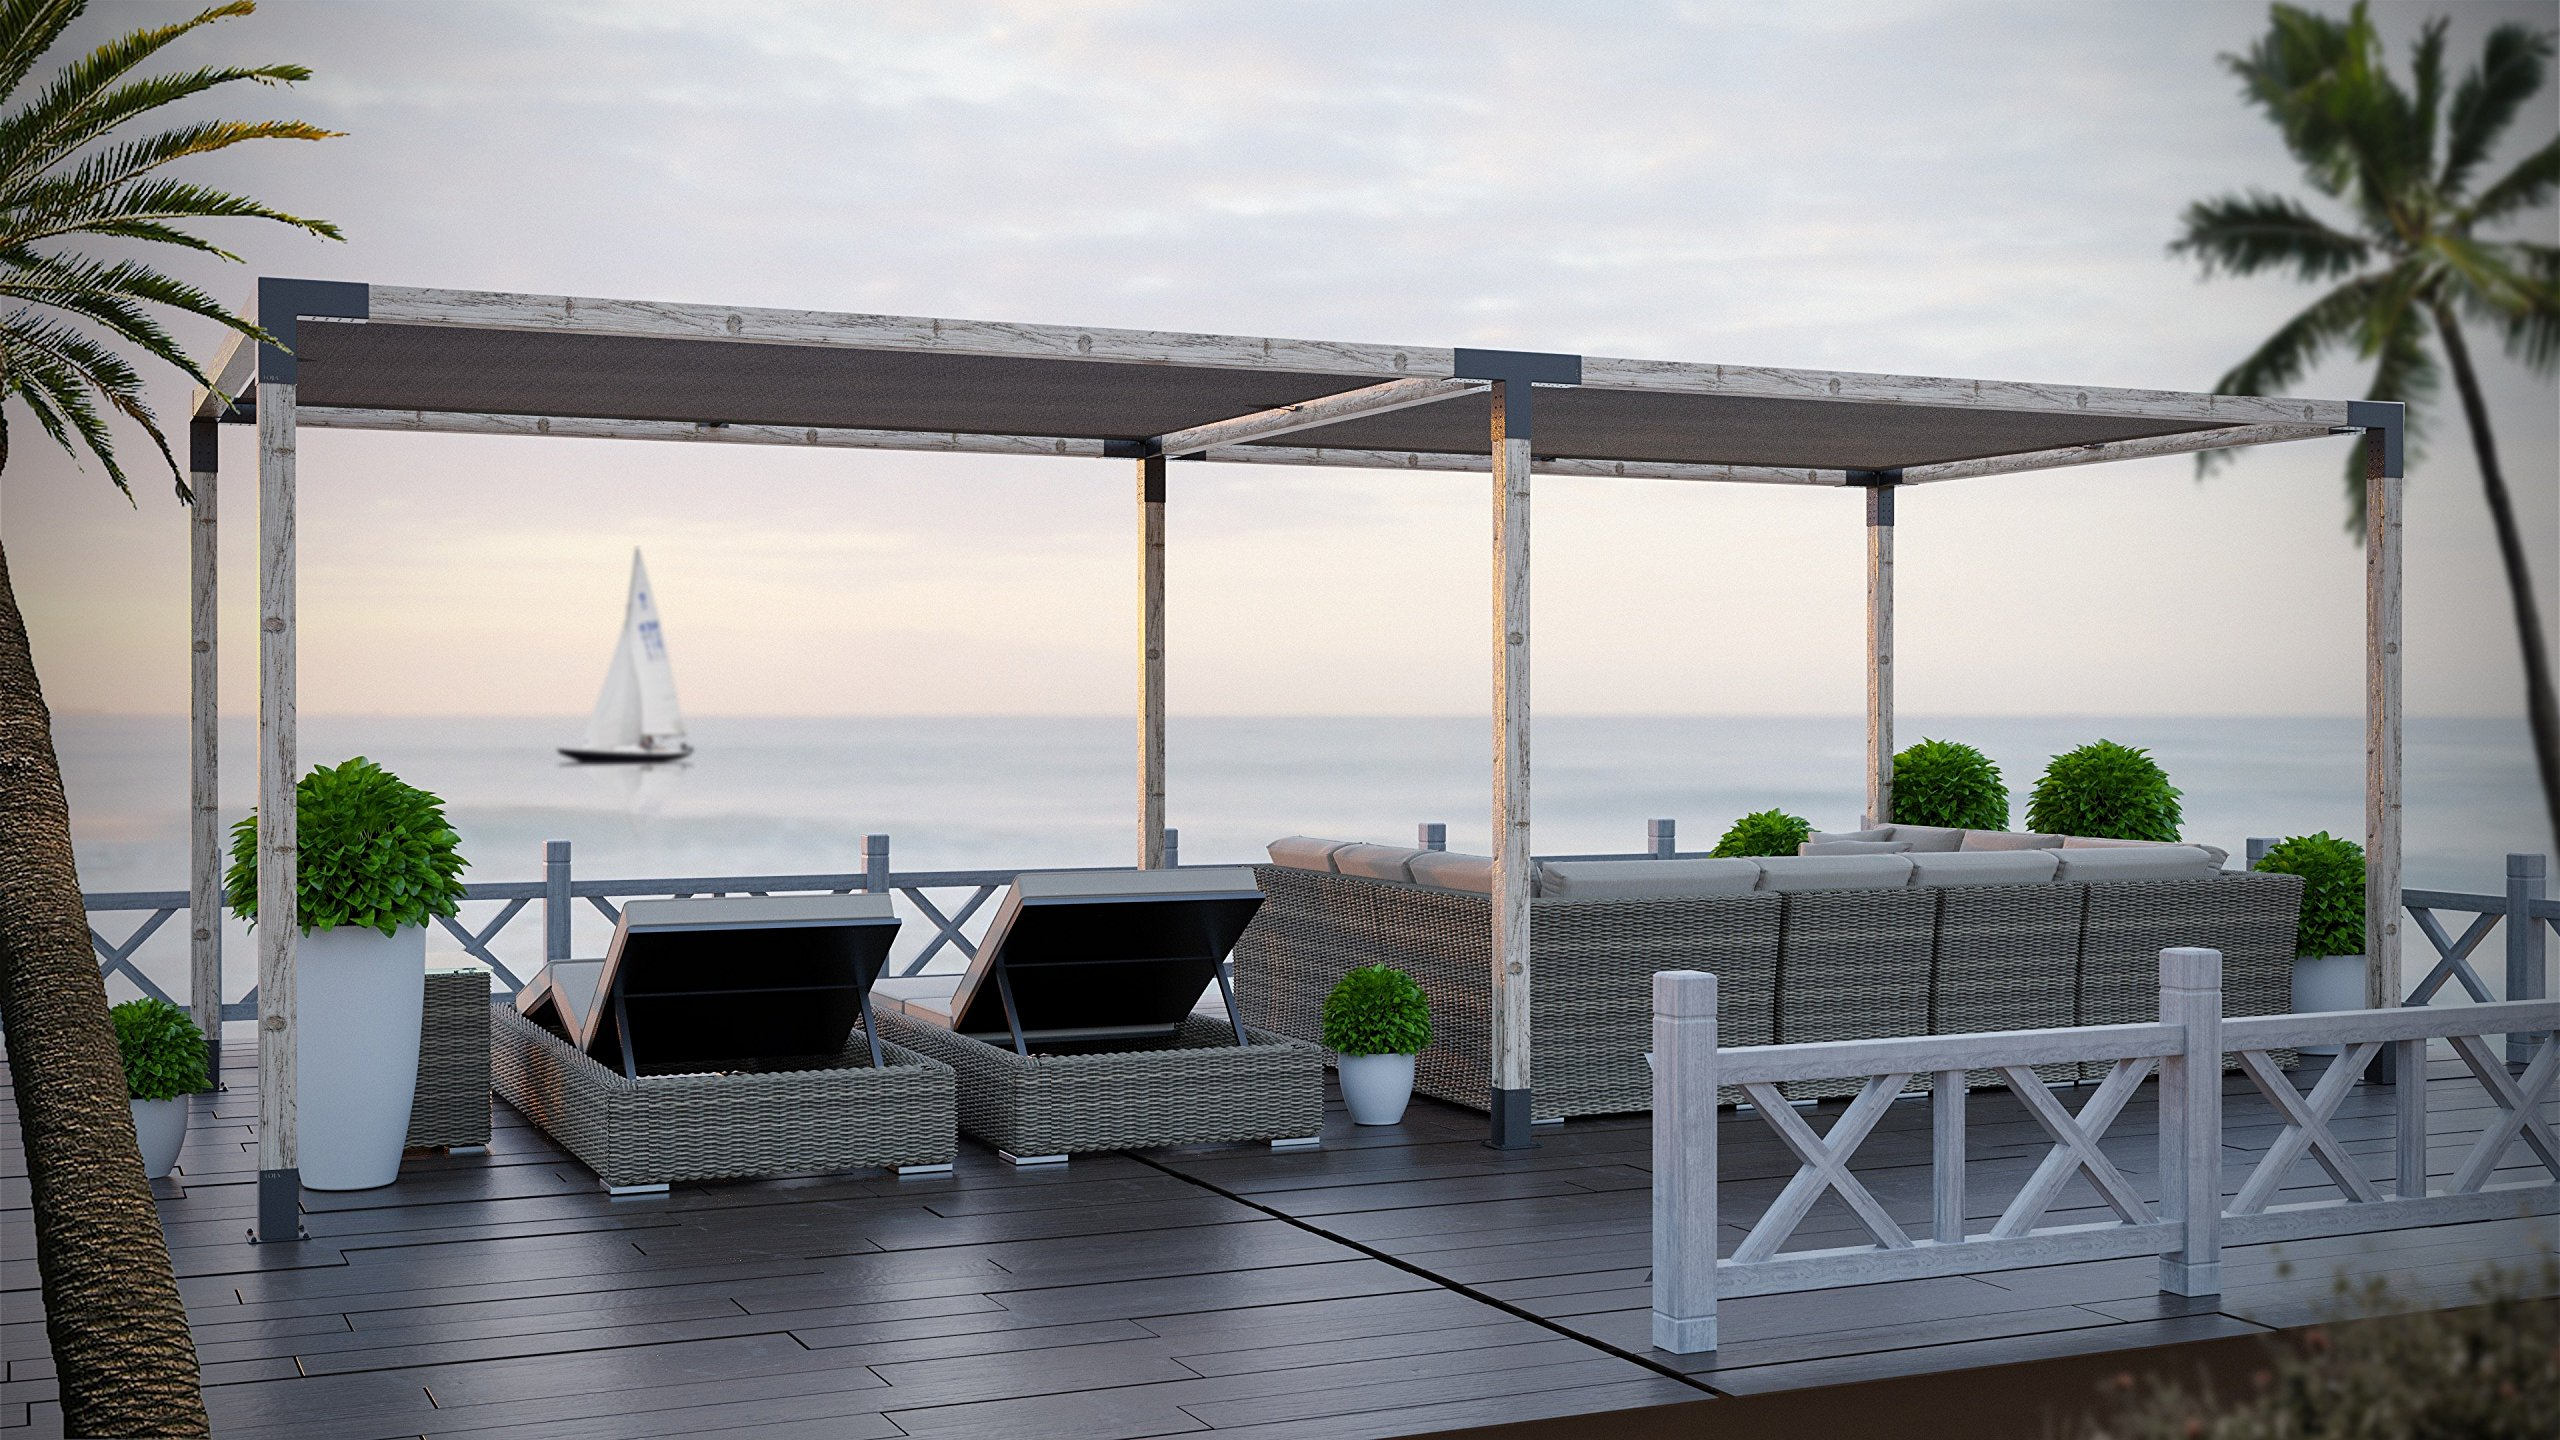 TOJA Grid - Double Pergola with Shade Sail (12x24 - Includes 12x12+12x12 Shade Sails)